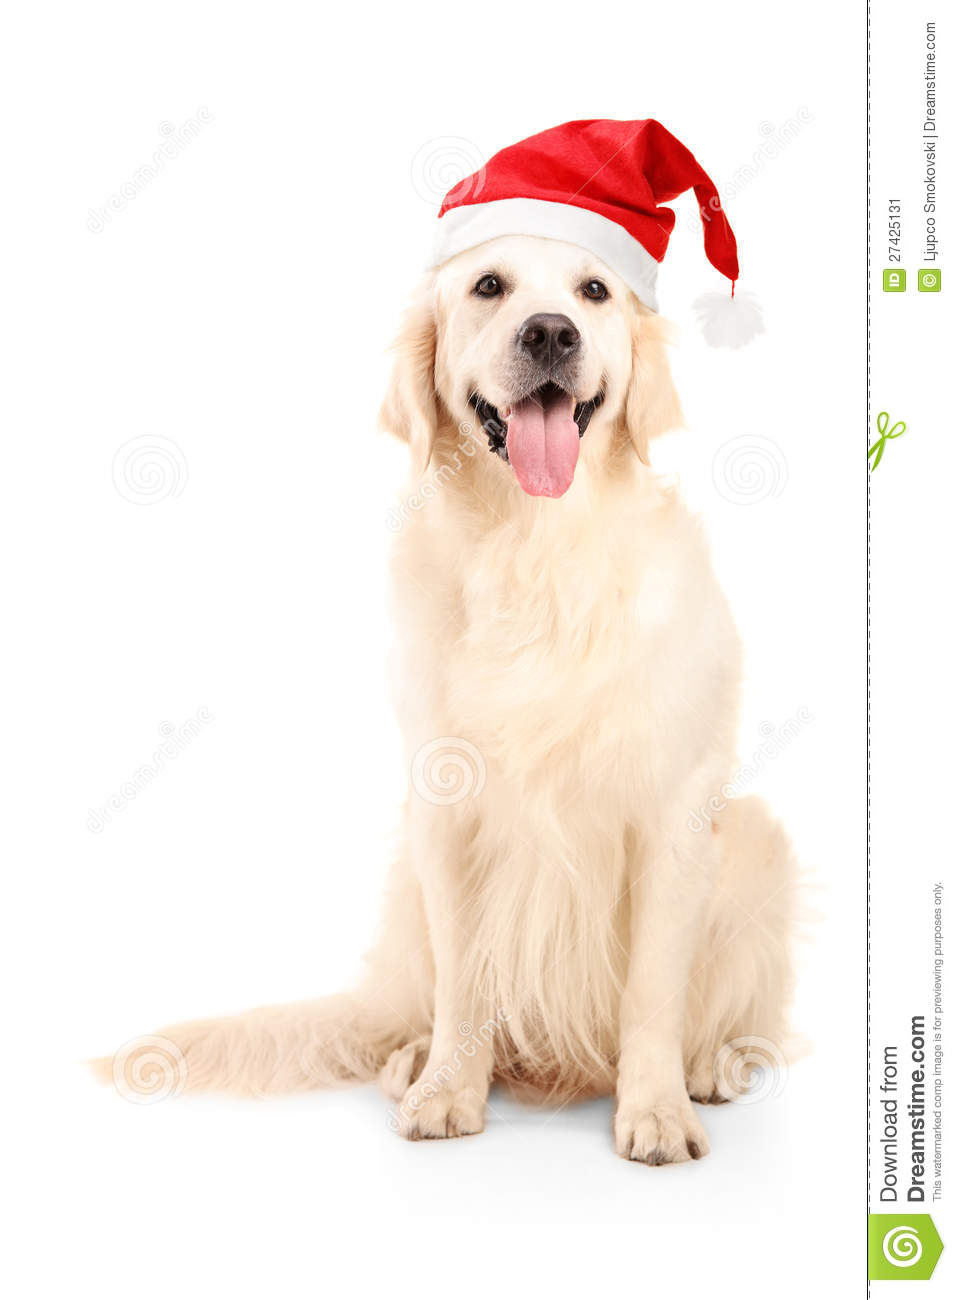 Christmas Hats For Dogs.A Studio Shot Of A Dog Wearing A Christmas Hat Stock Image